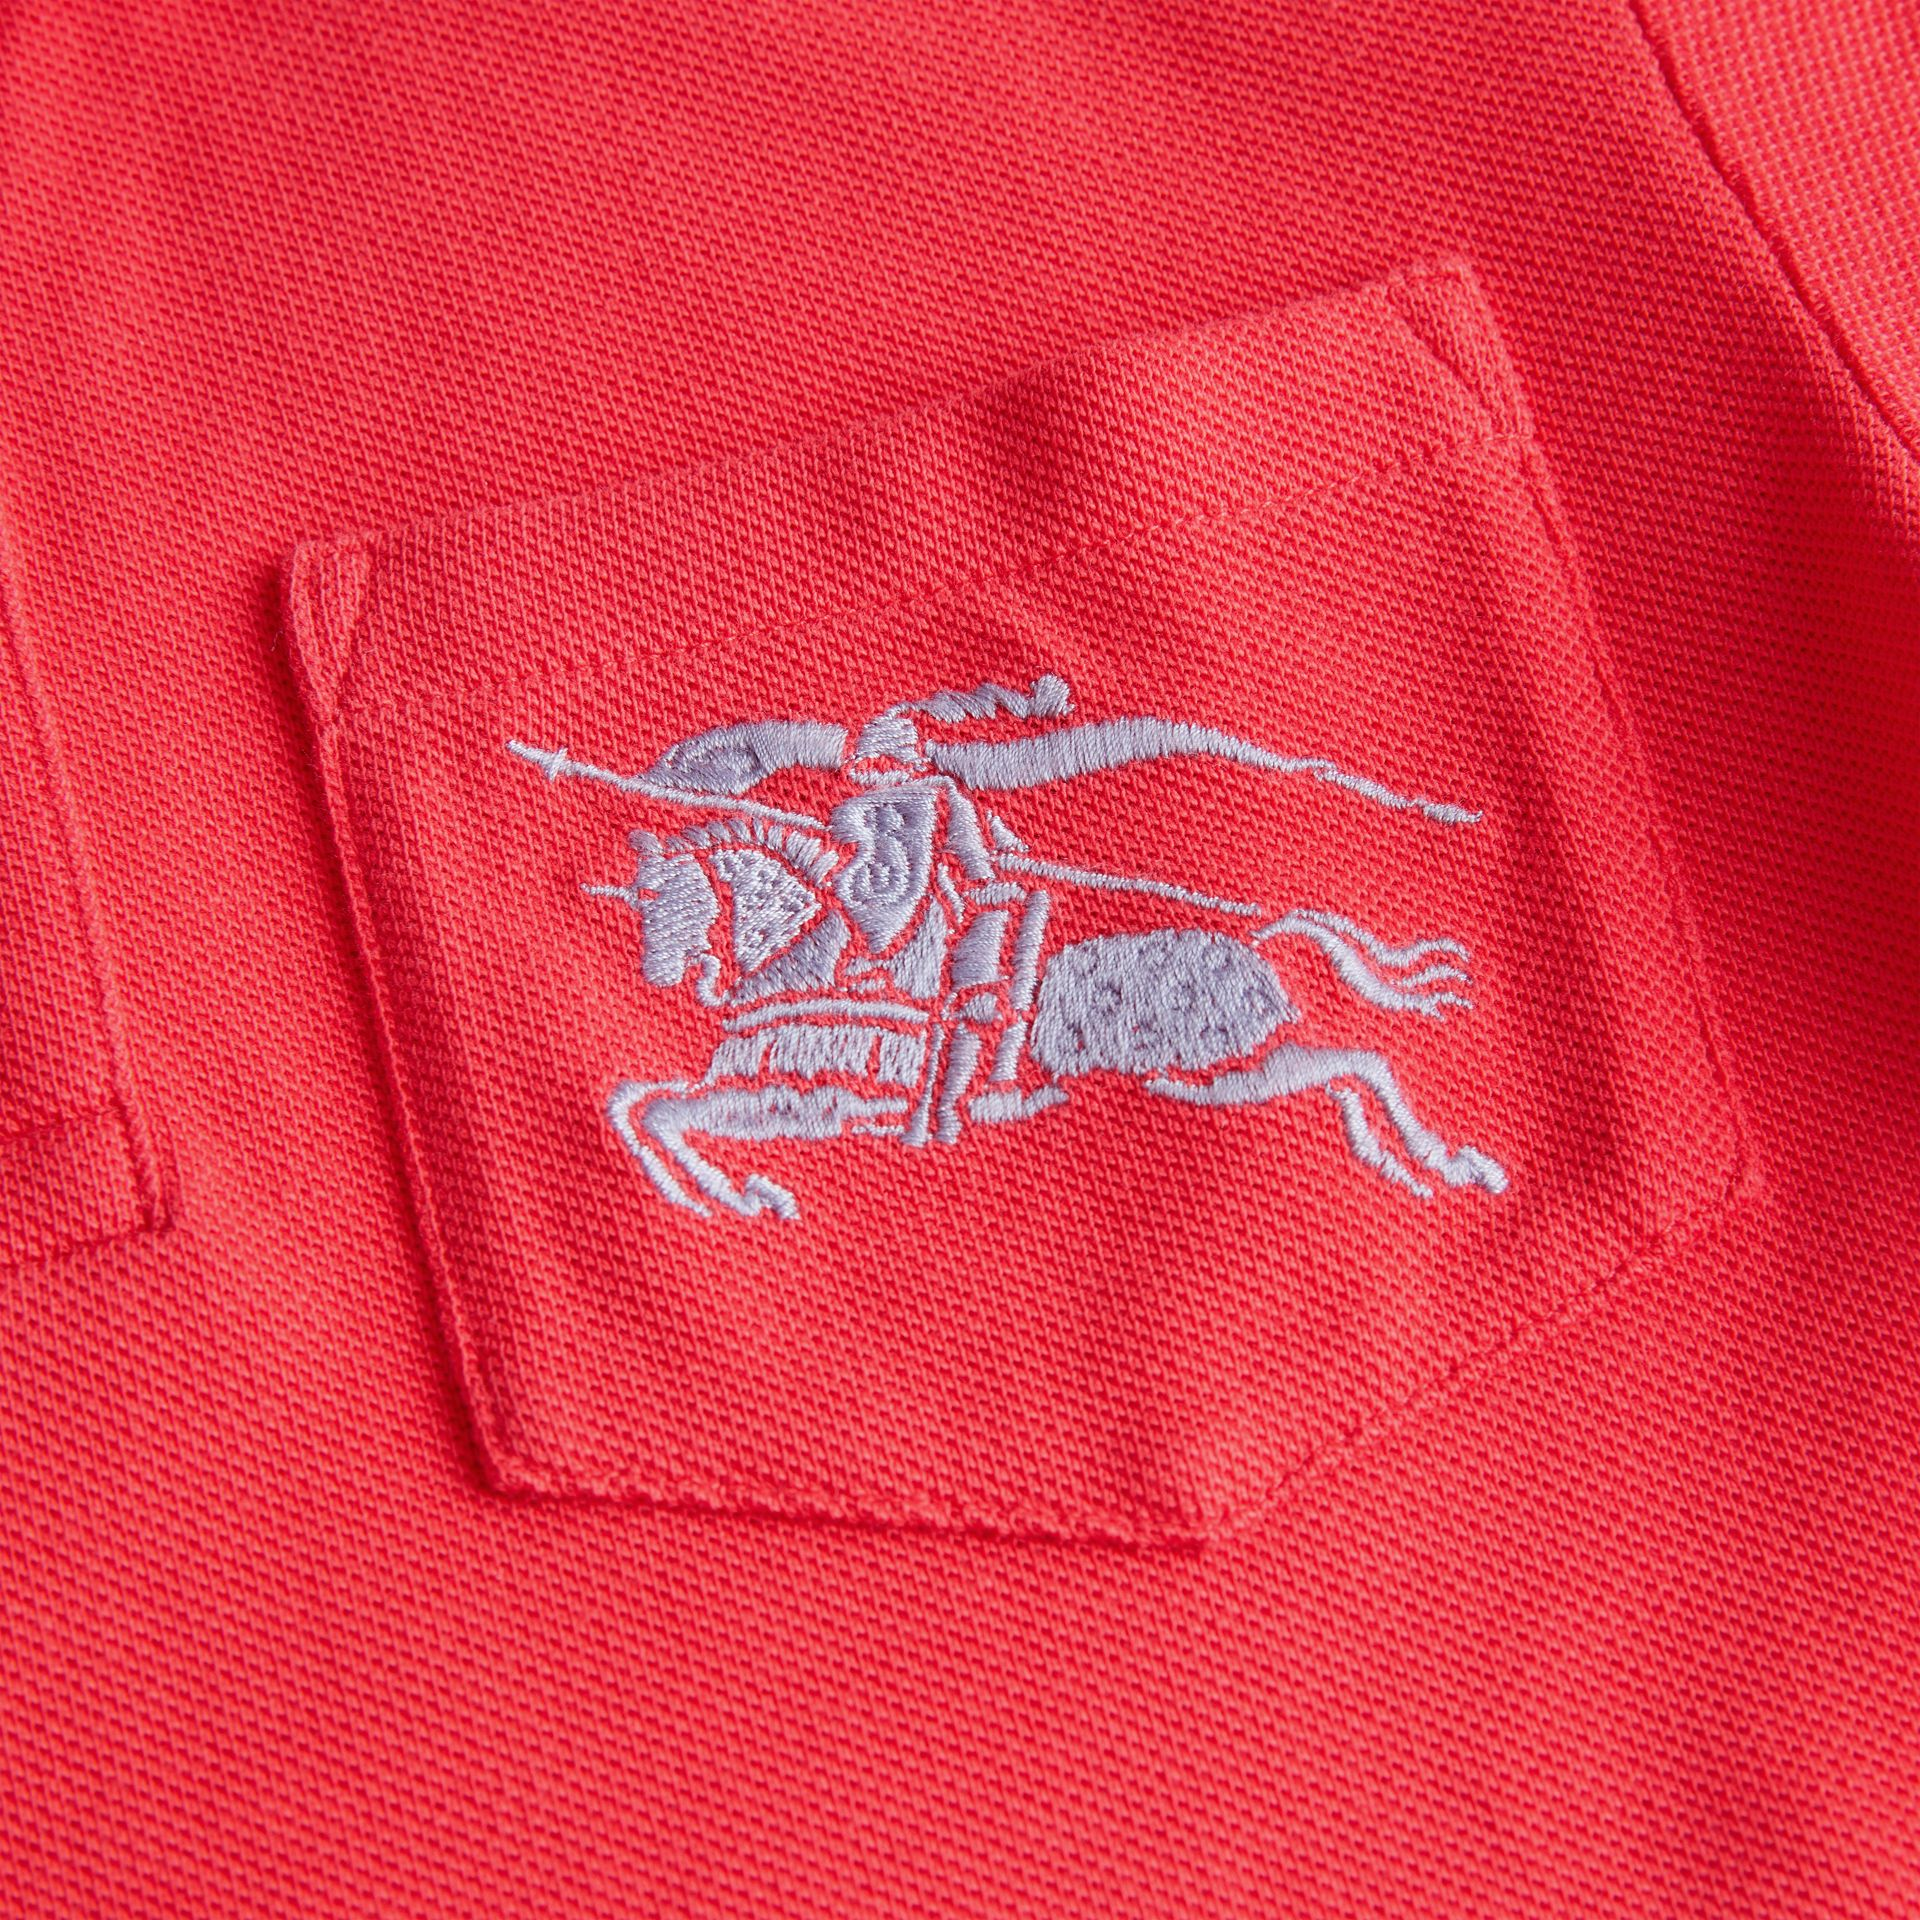 EKD Logo Cotton Piqué Polo Shirt in Bright Red | Burberry United Kingdom - gallery image 1